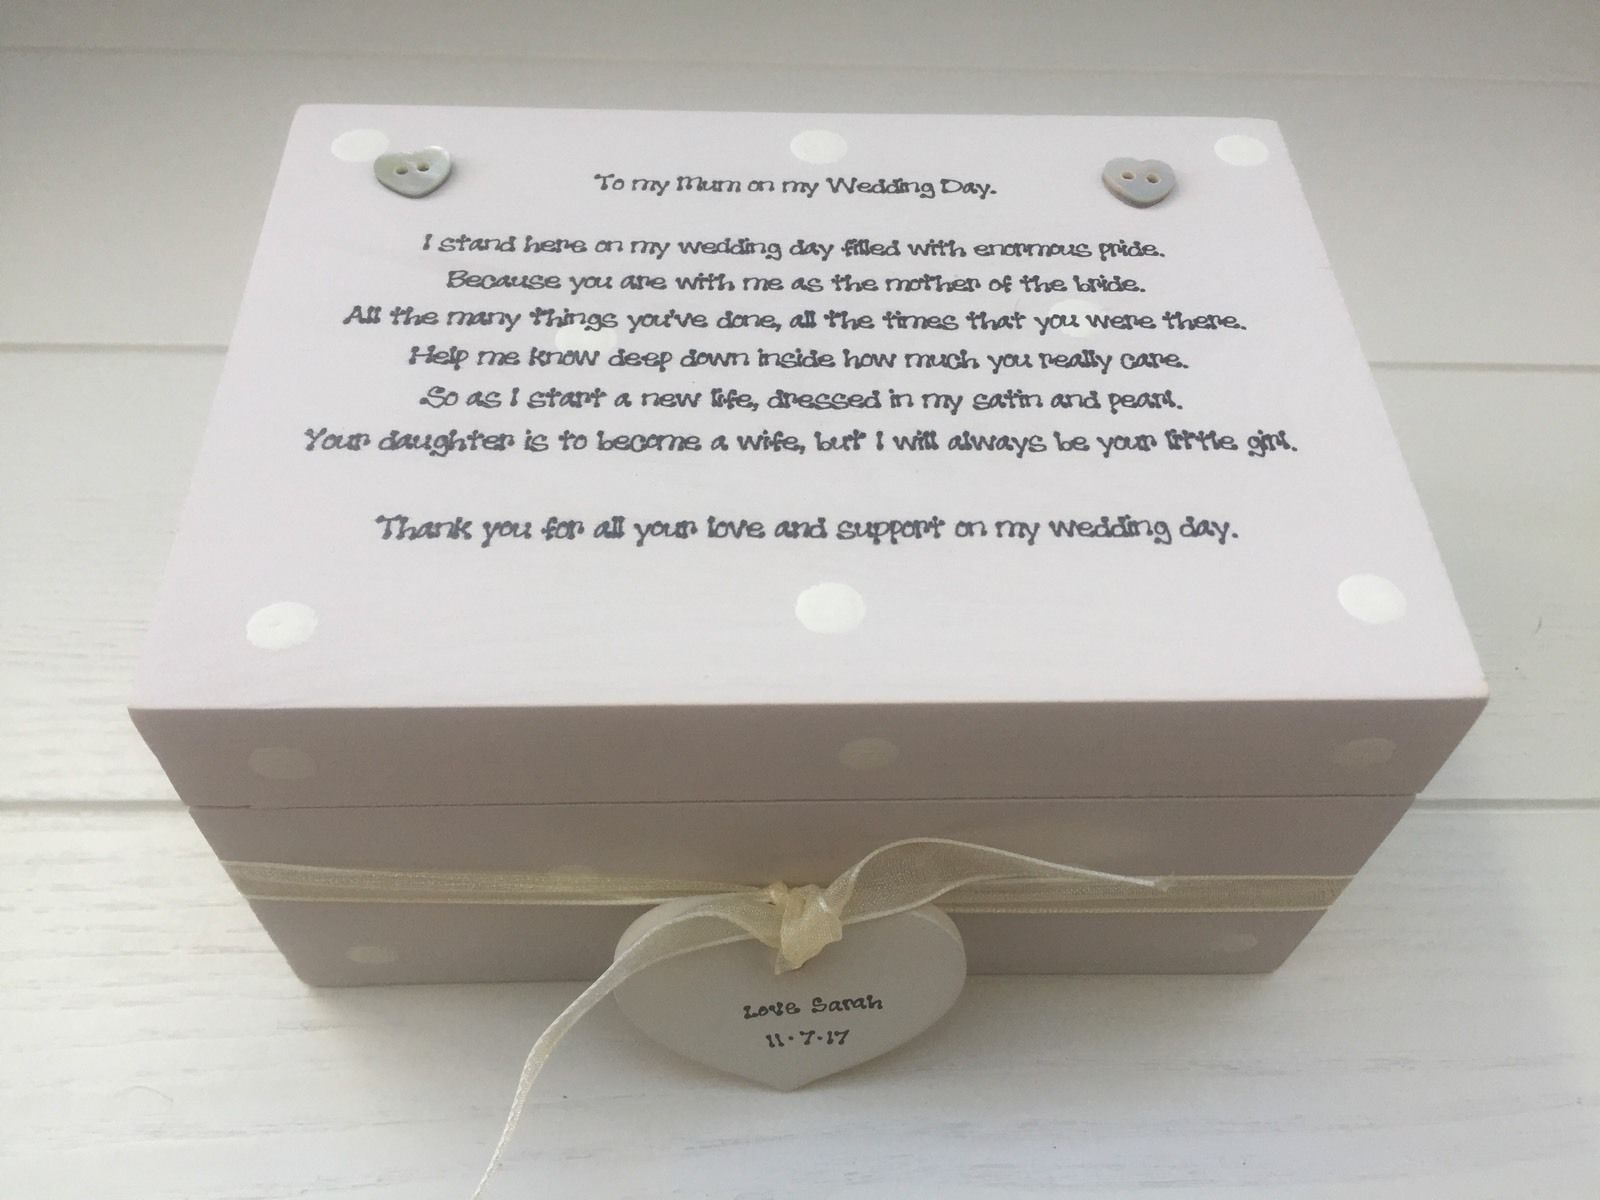 Wedding Keepsake Gifts Uk : ... Special Mother Of The Bride Gift Keepsake Box Wedding - 252733393774